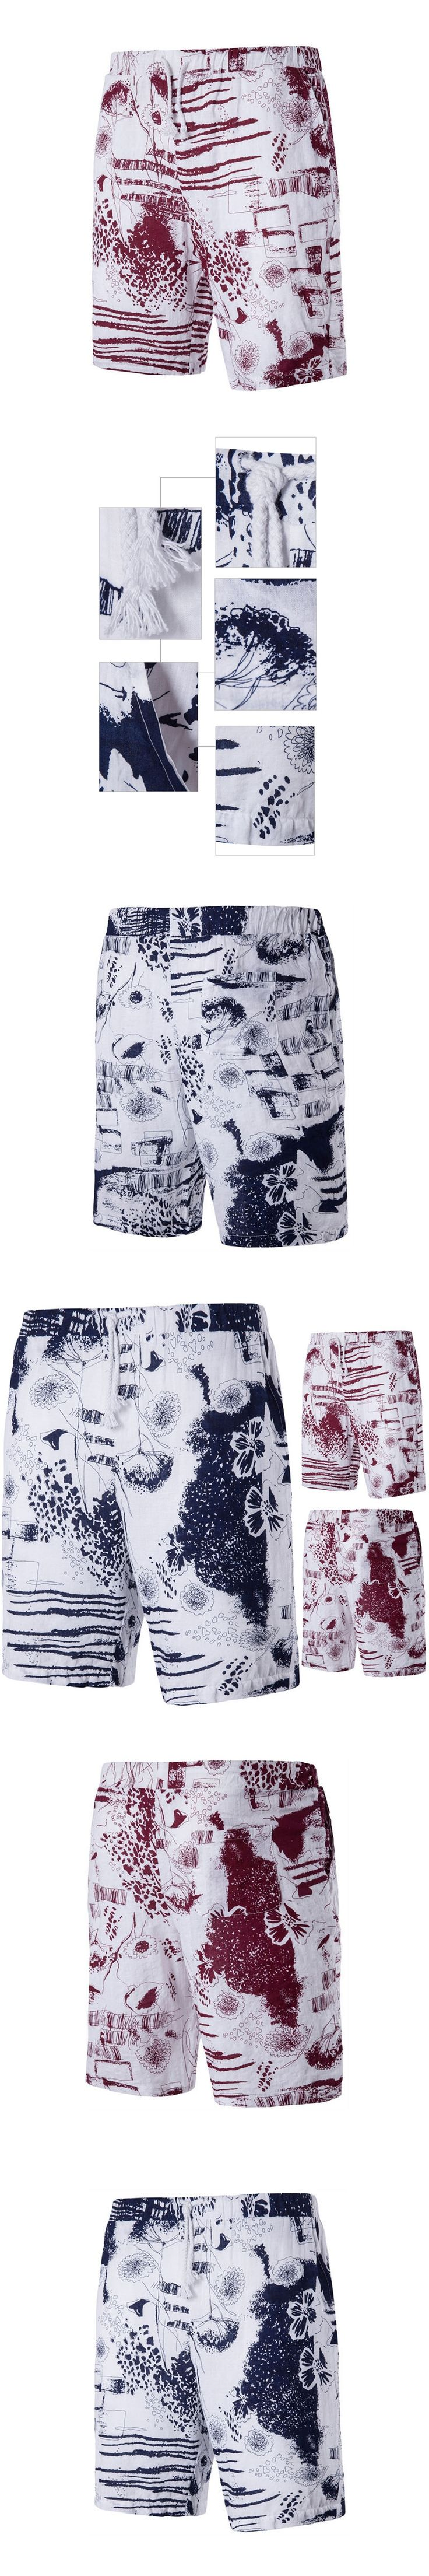 New Summer Style Casual Shorts Men Brand Fashion Boardshorts Male Cotton Flower Print Shorts Comfortable Beach Short Bermuda